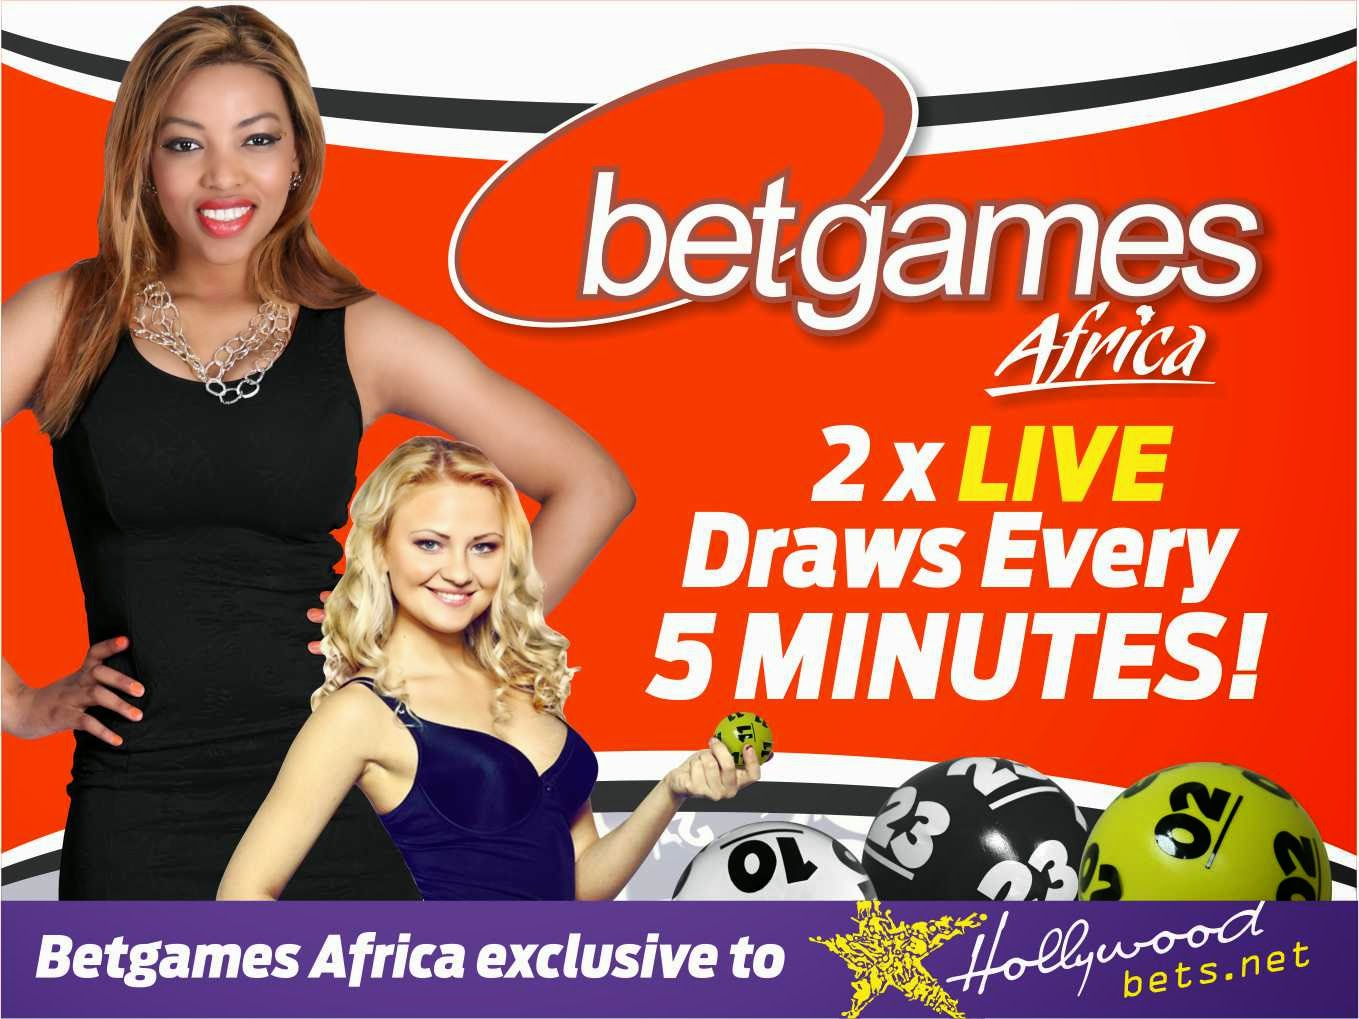 Betgames Africa - Play now at Hollywoodbets.net and Hollywoodbets branches